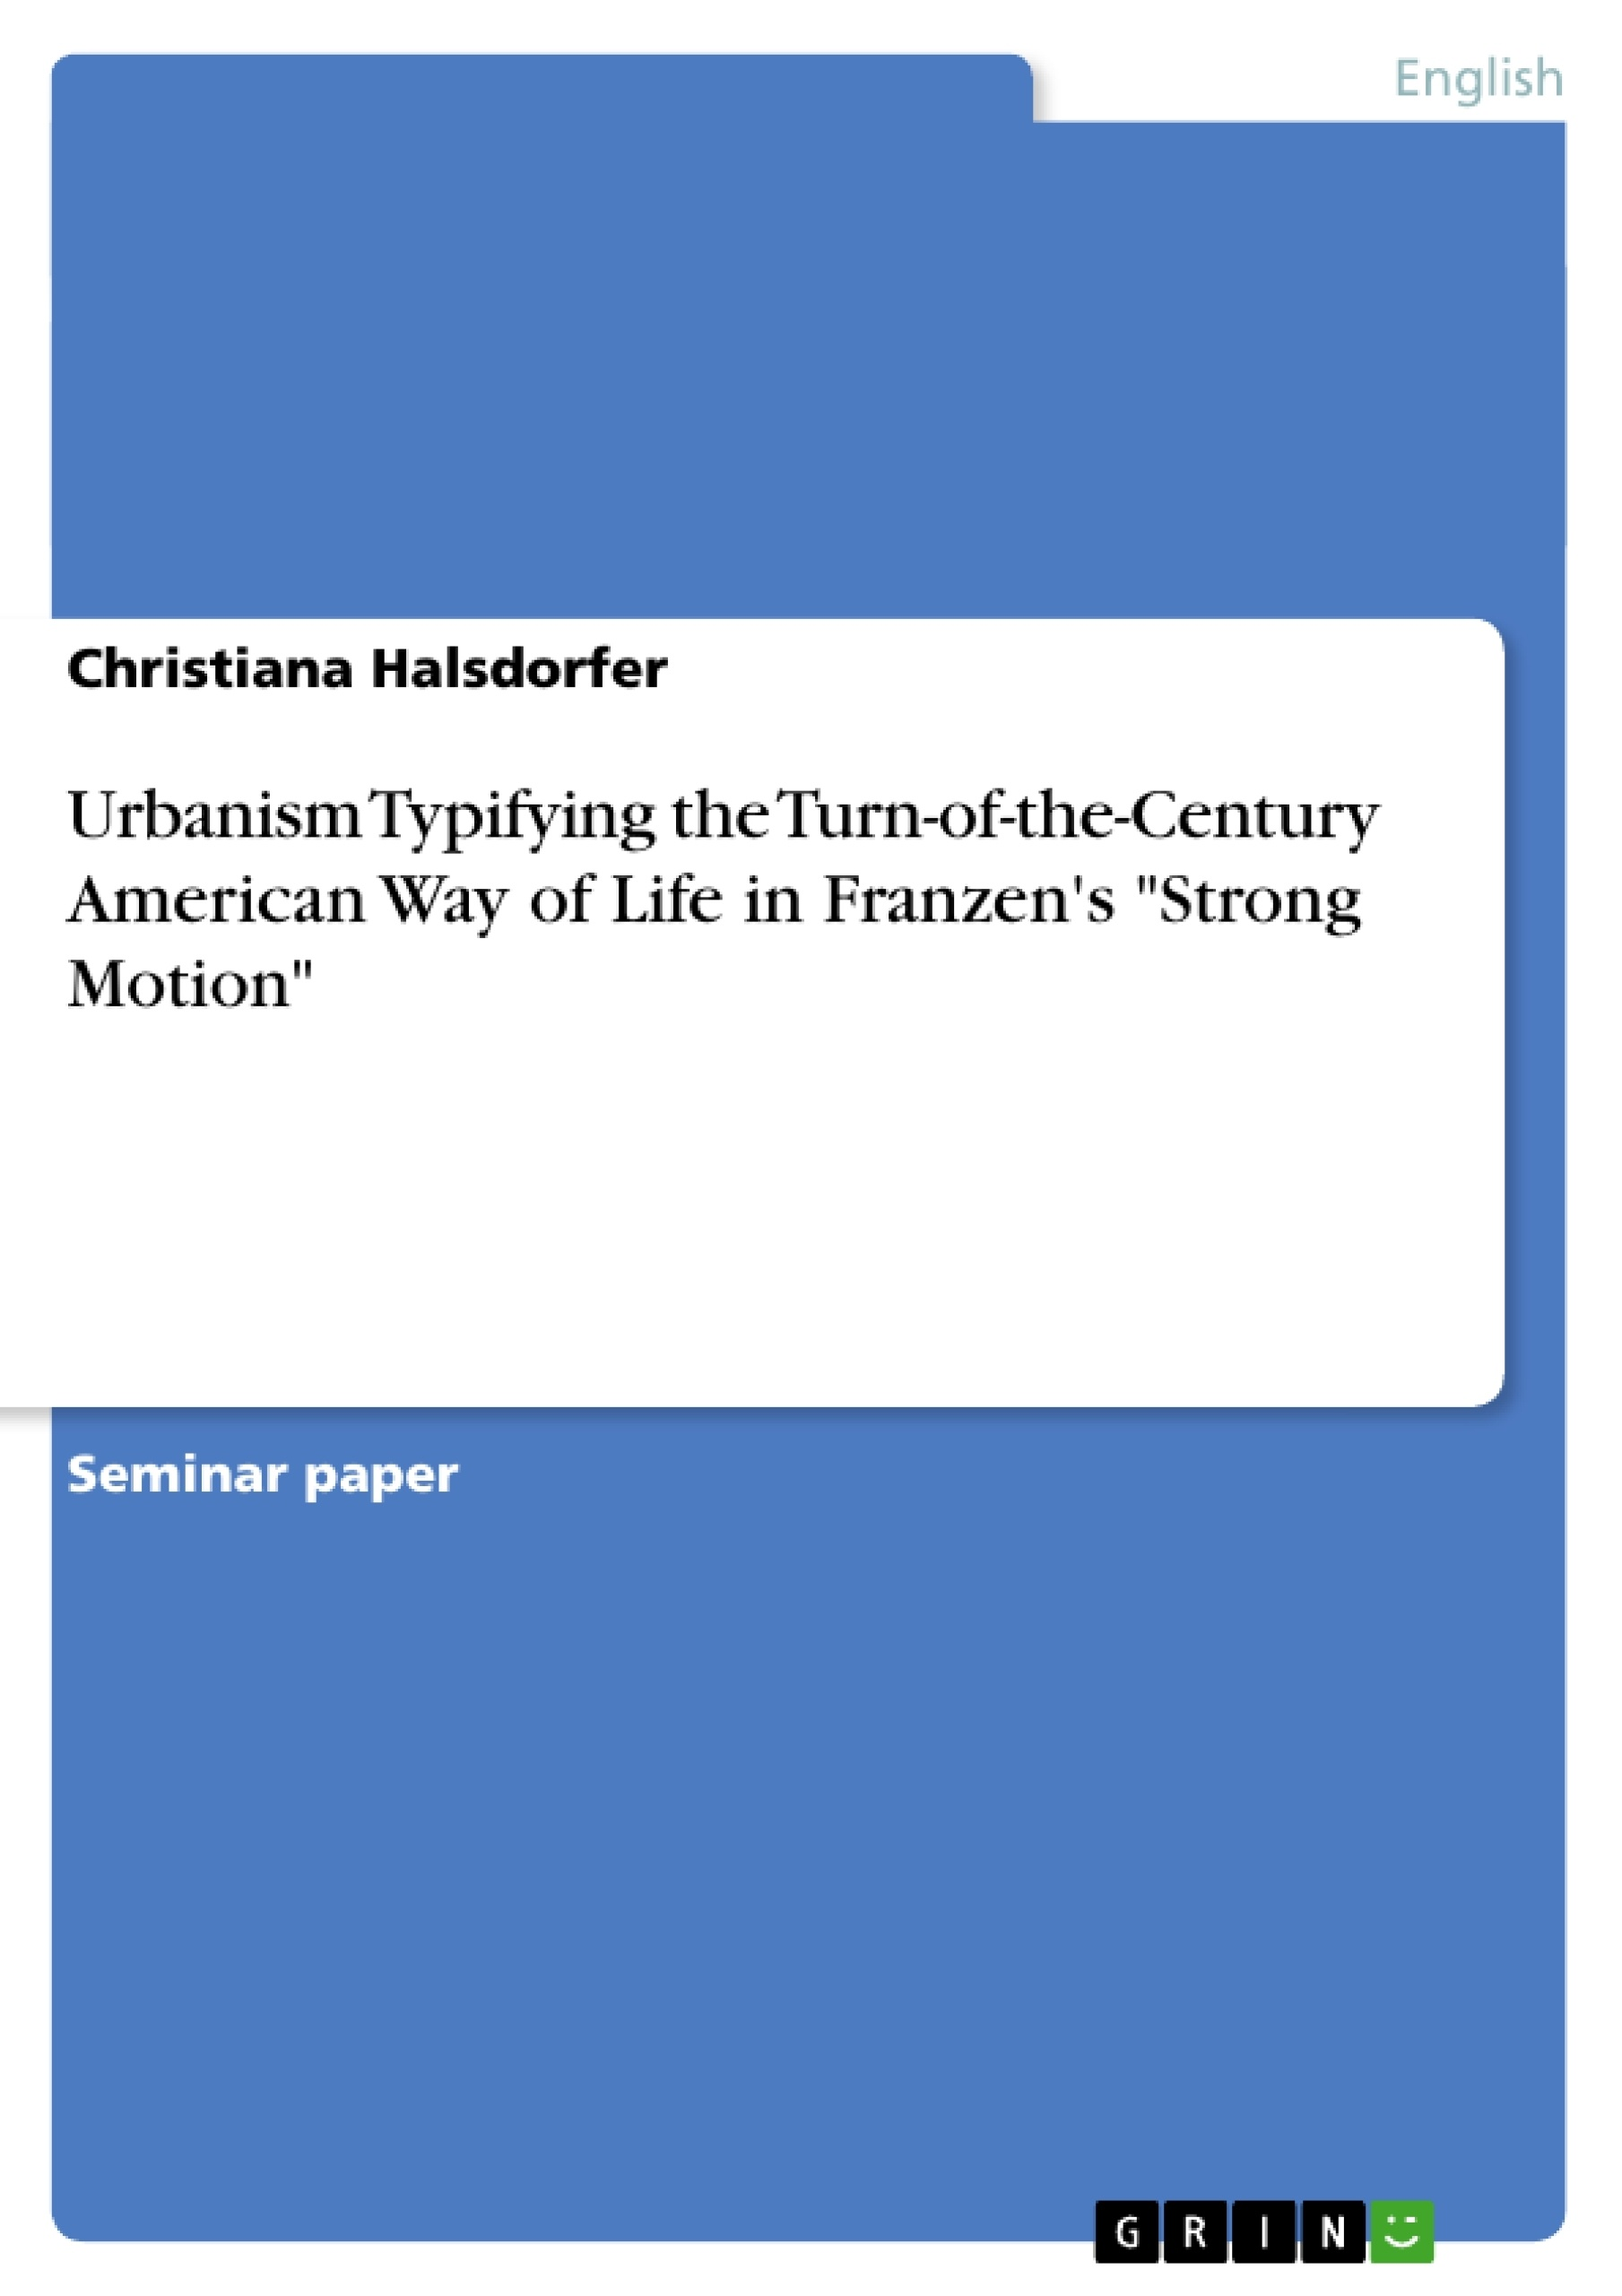 """Title: Urbanism Typifying the Turn-of-the-Century American Way of Life in Franzen's """"Strong Motion"""""""